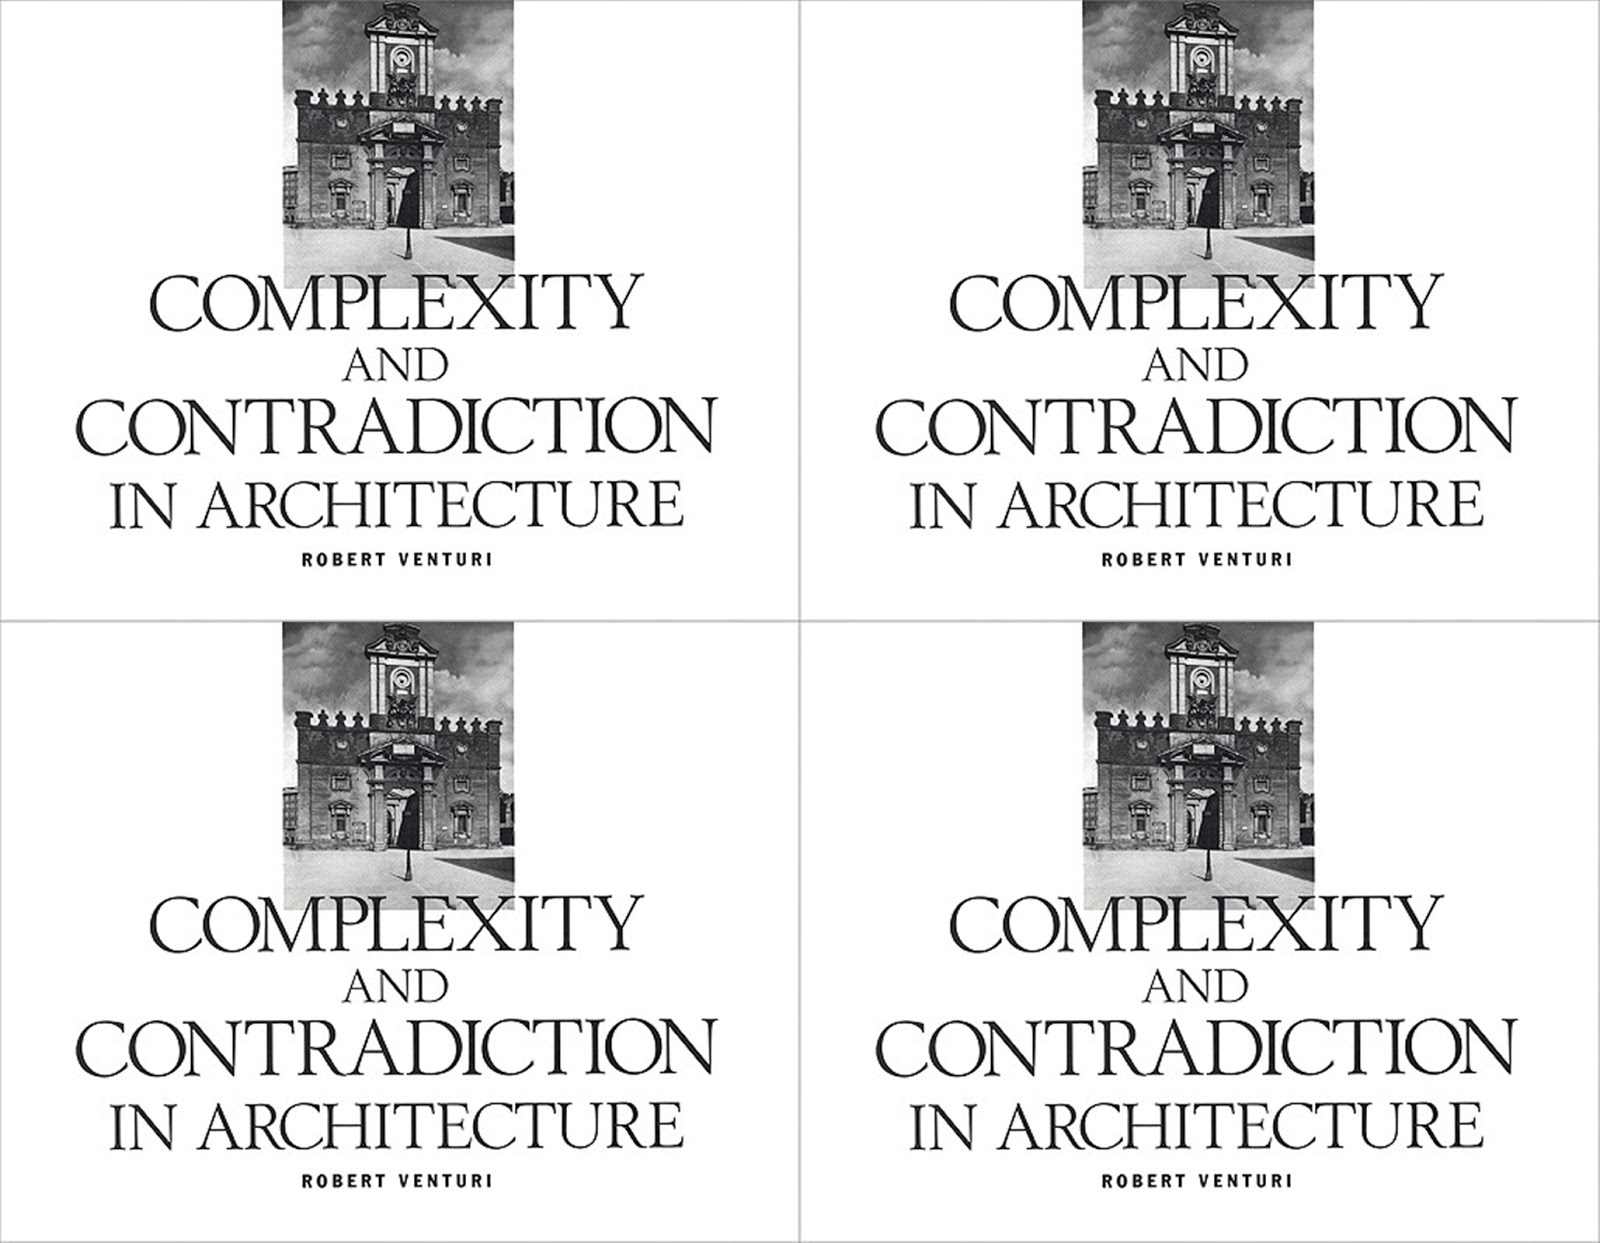 complexity and contradiction in architecture Biography: robert venturi | the pritzker architecture prize                wwwpritzkerprizecom/biography-robert-venturi.